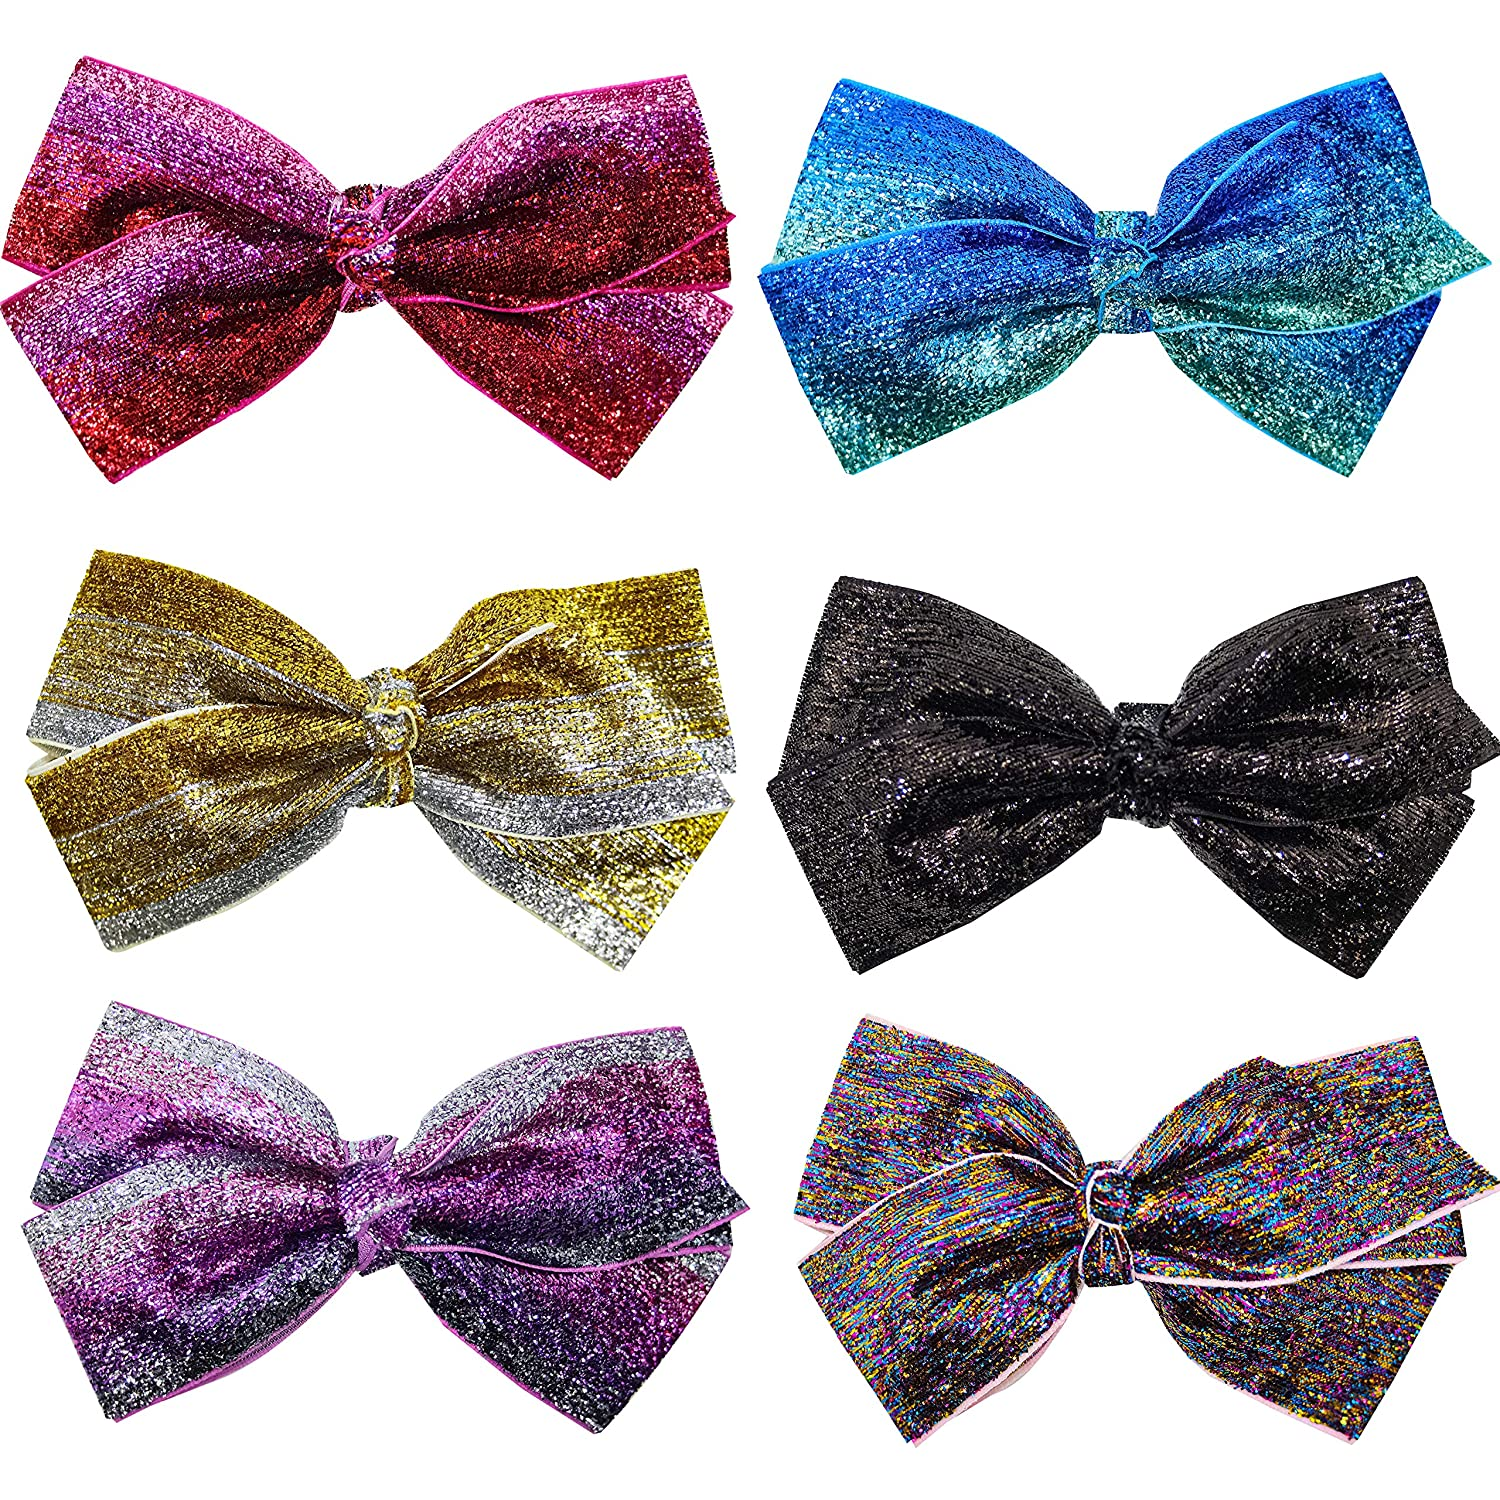 FROG SAC 6 Glitter Hair Bows for For Bow Cute Sparkly Girls Max 1 year warranty 58% OFF Kid